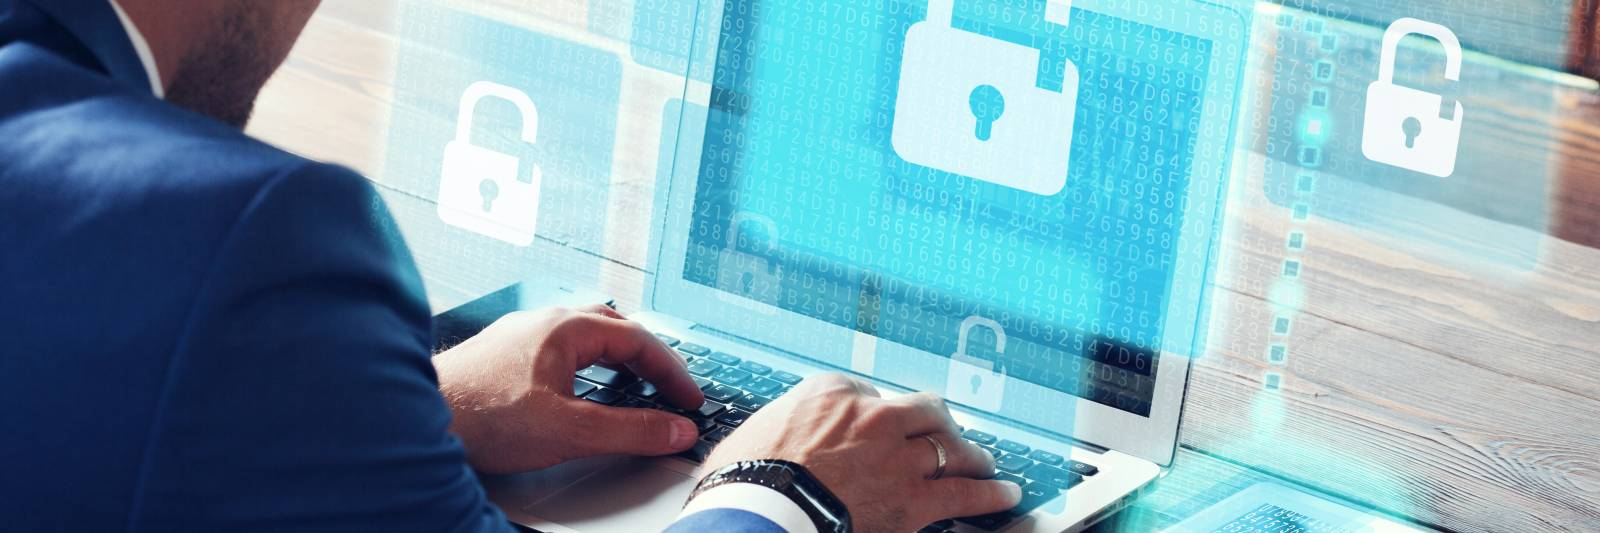 10 ways to get employees invested in cyber security awareness